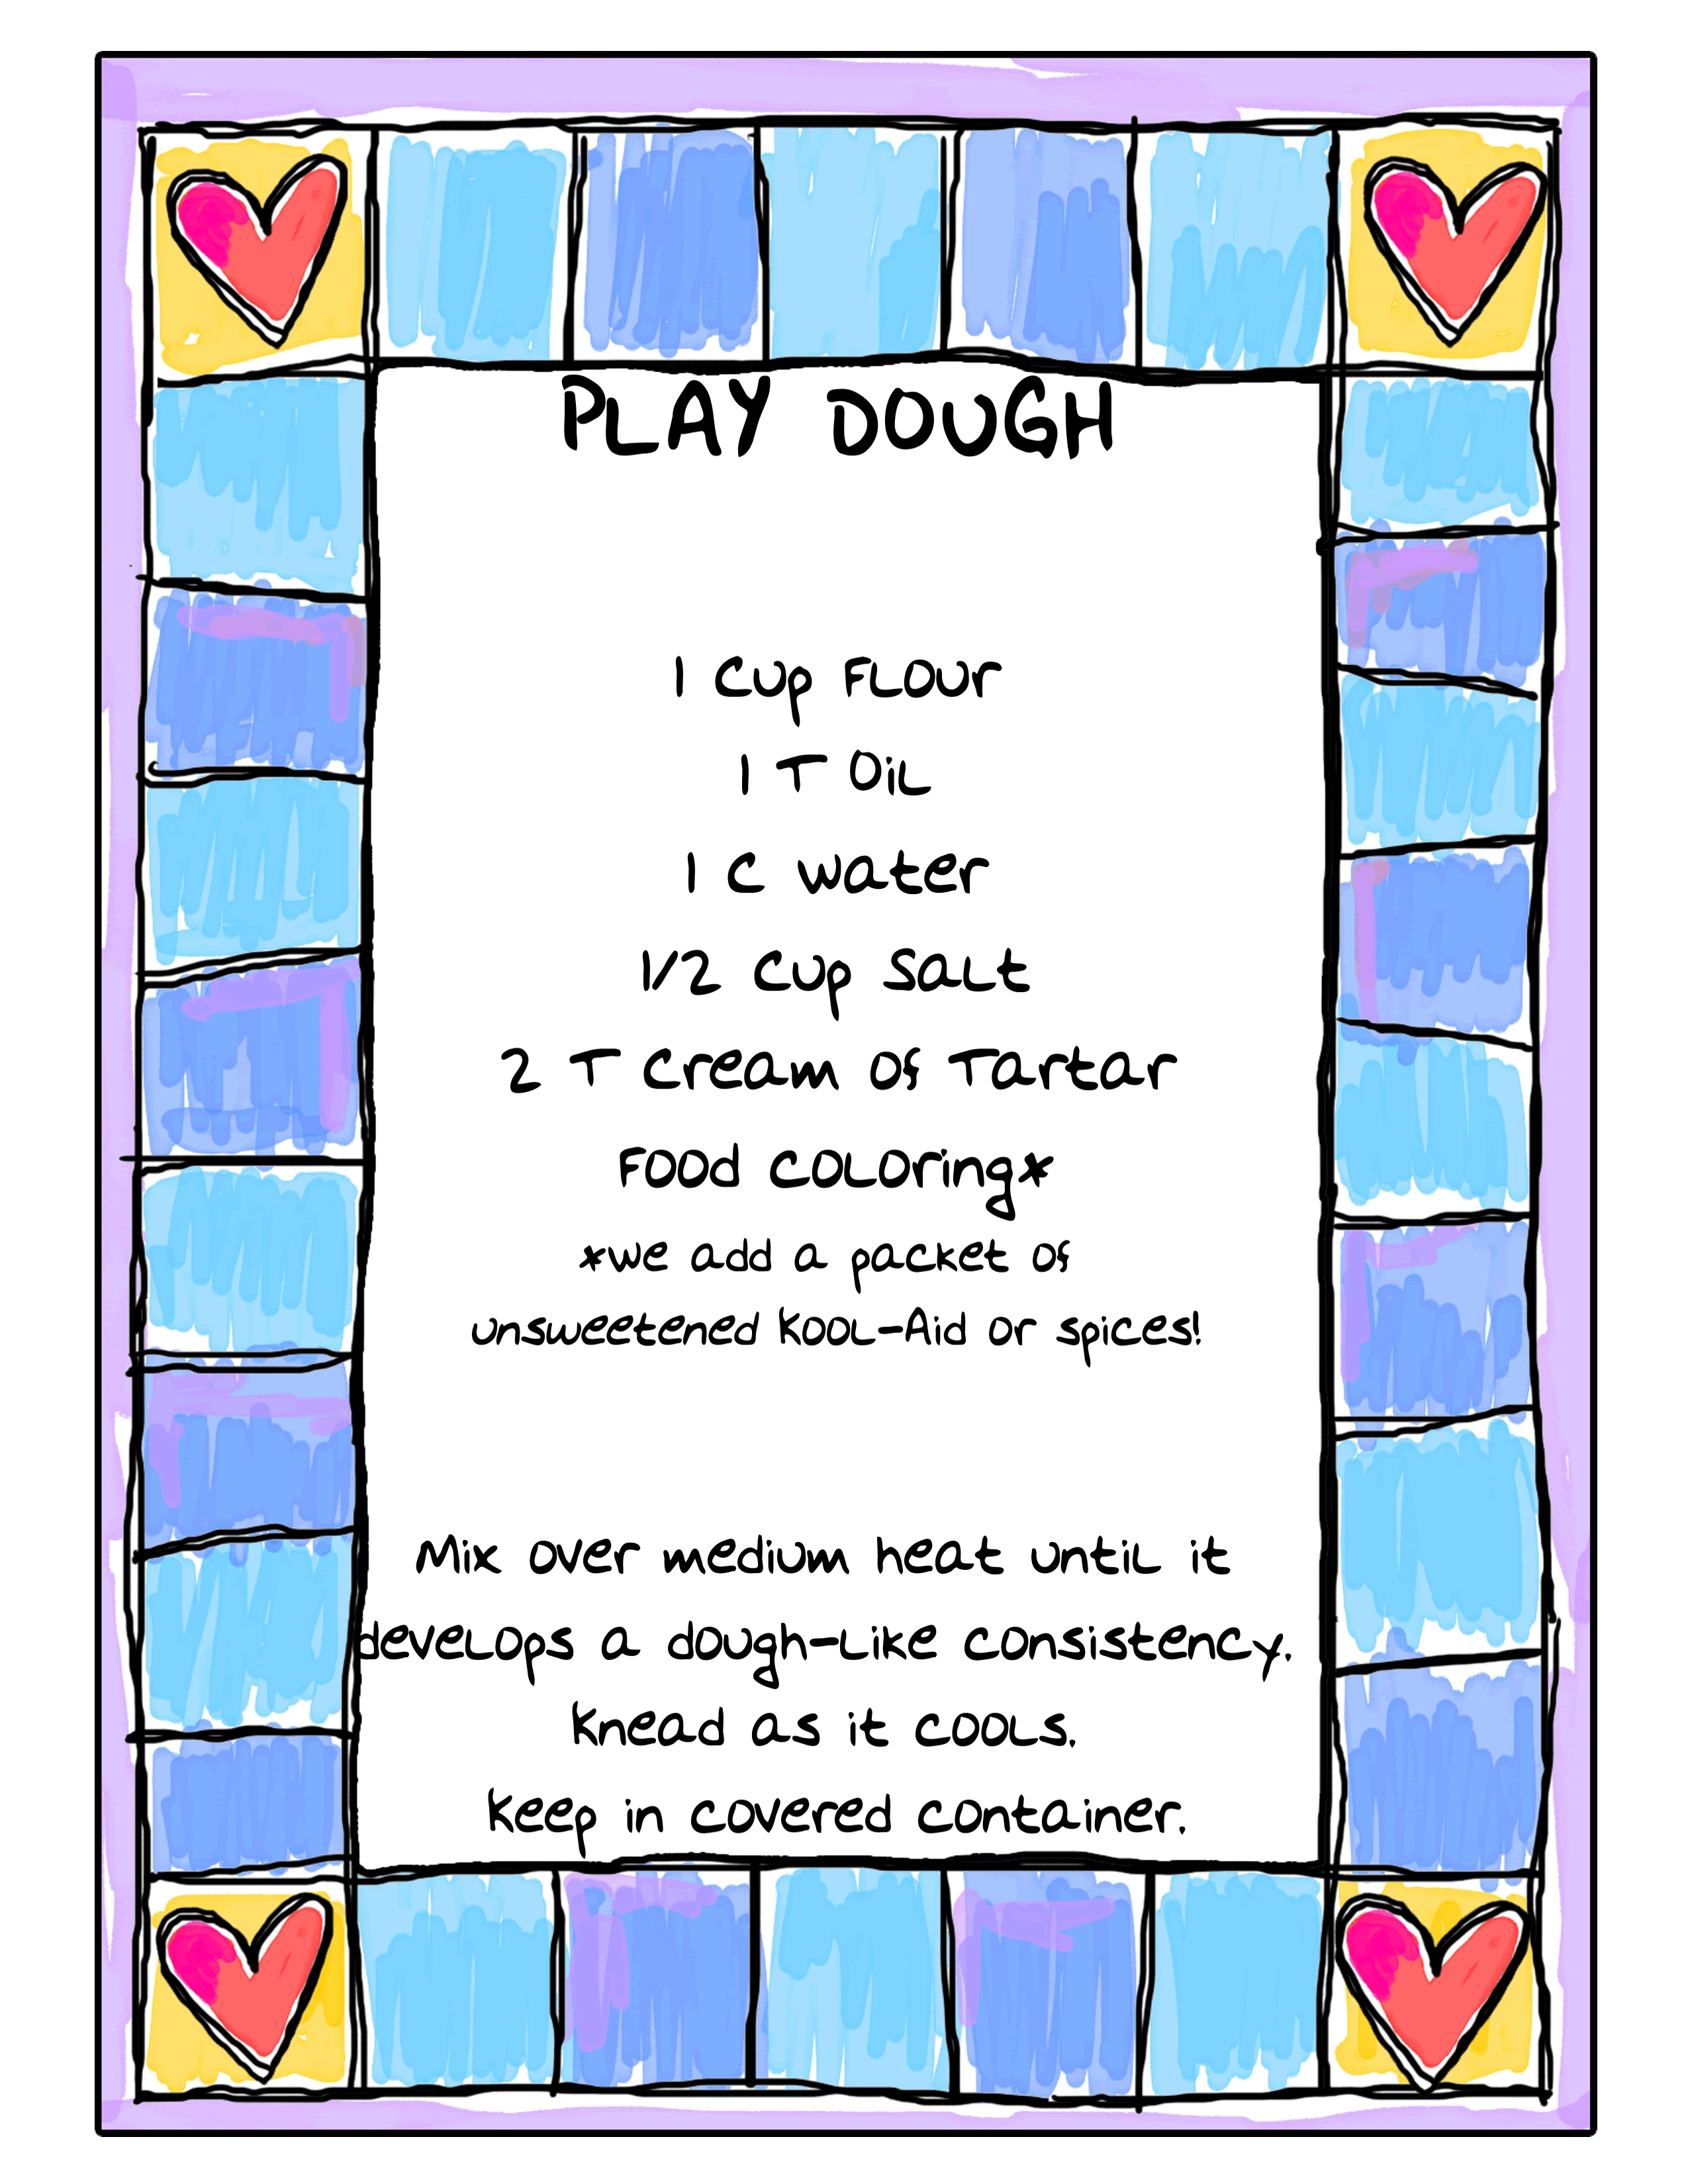 play-dough-recipe-001